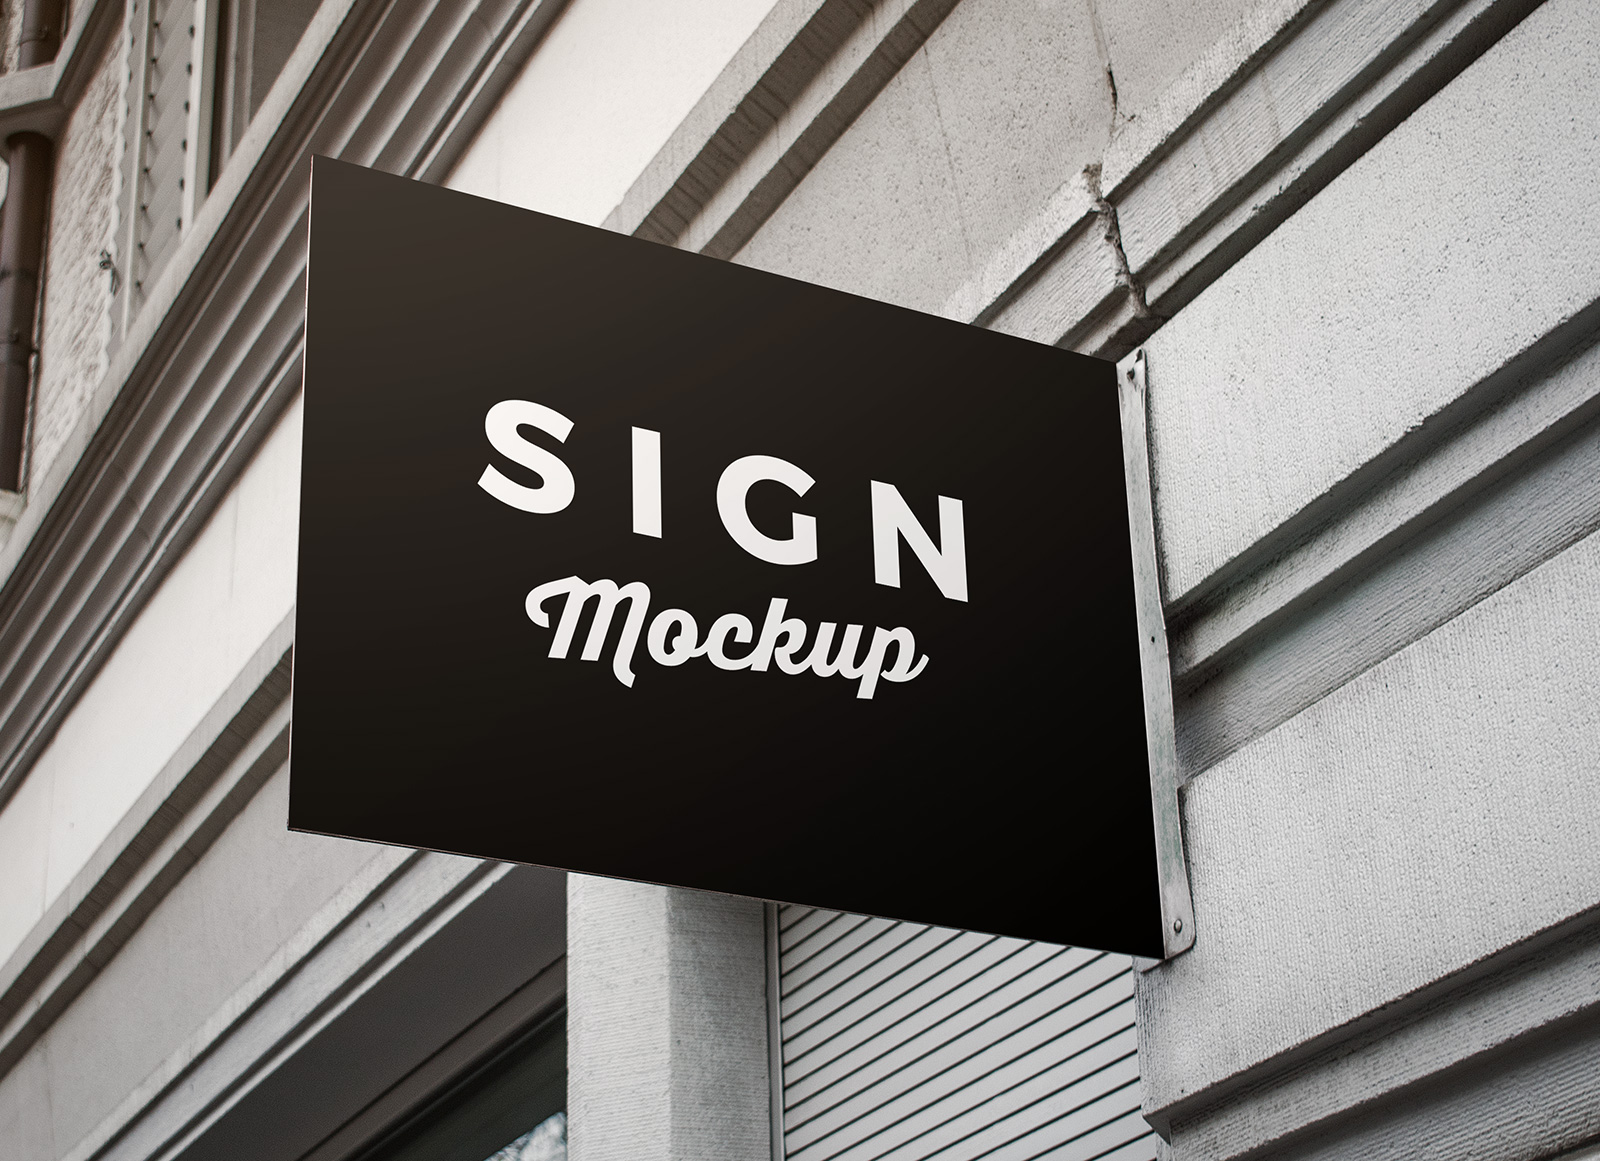 For-Wall-Mounted-Rectangle-Shape-Signage-Mockup-PSD